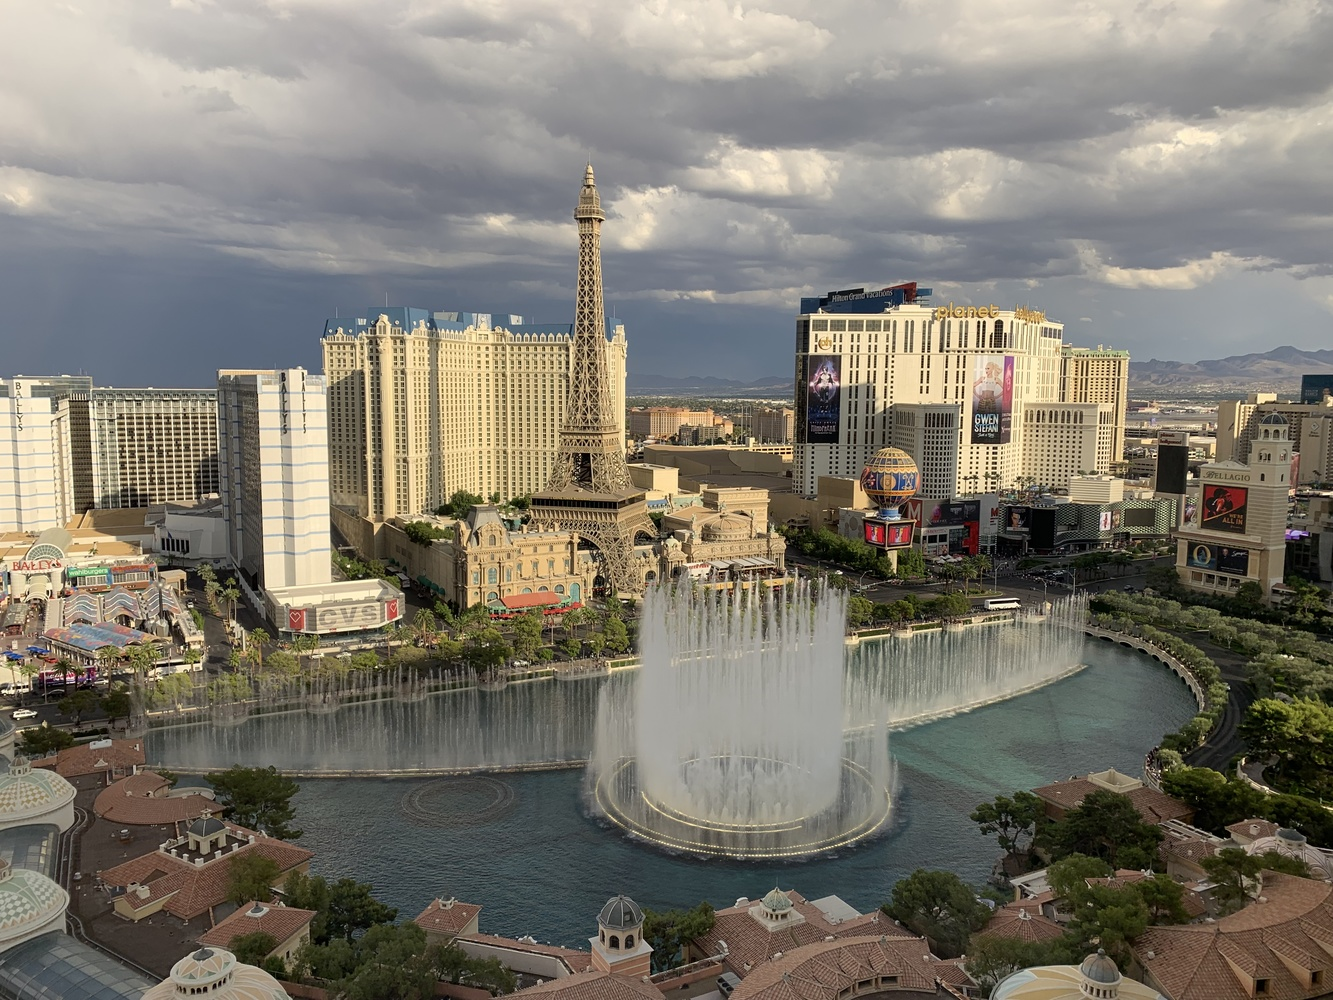 Vegas by James Zuffoletto